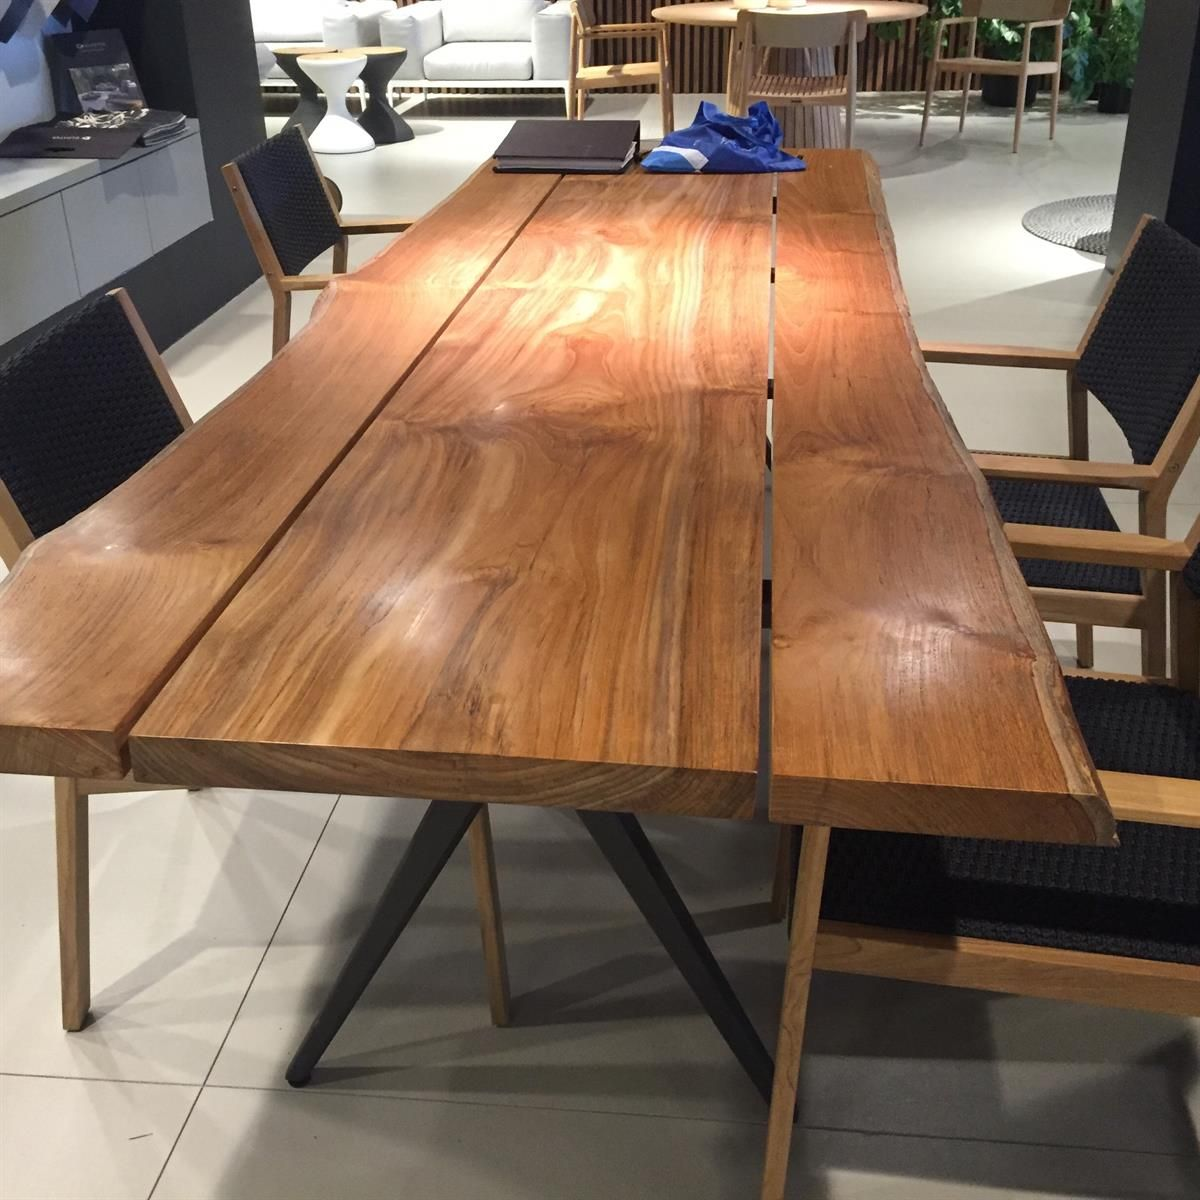 Delicieux Gloster Has Gone Over The Top With The NEW Split Raw Dining Table. Contact  Us For More Information